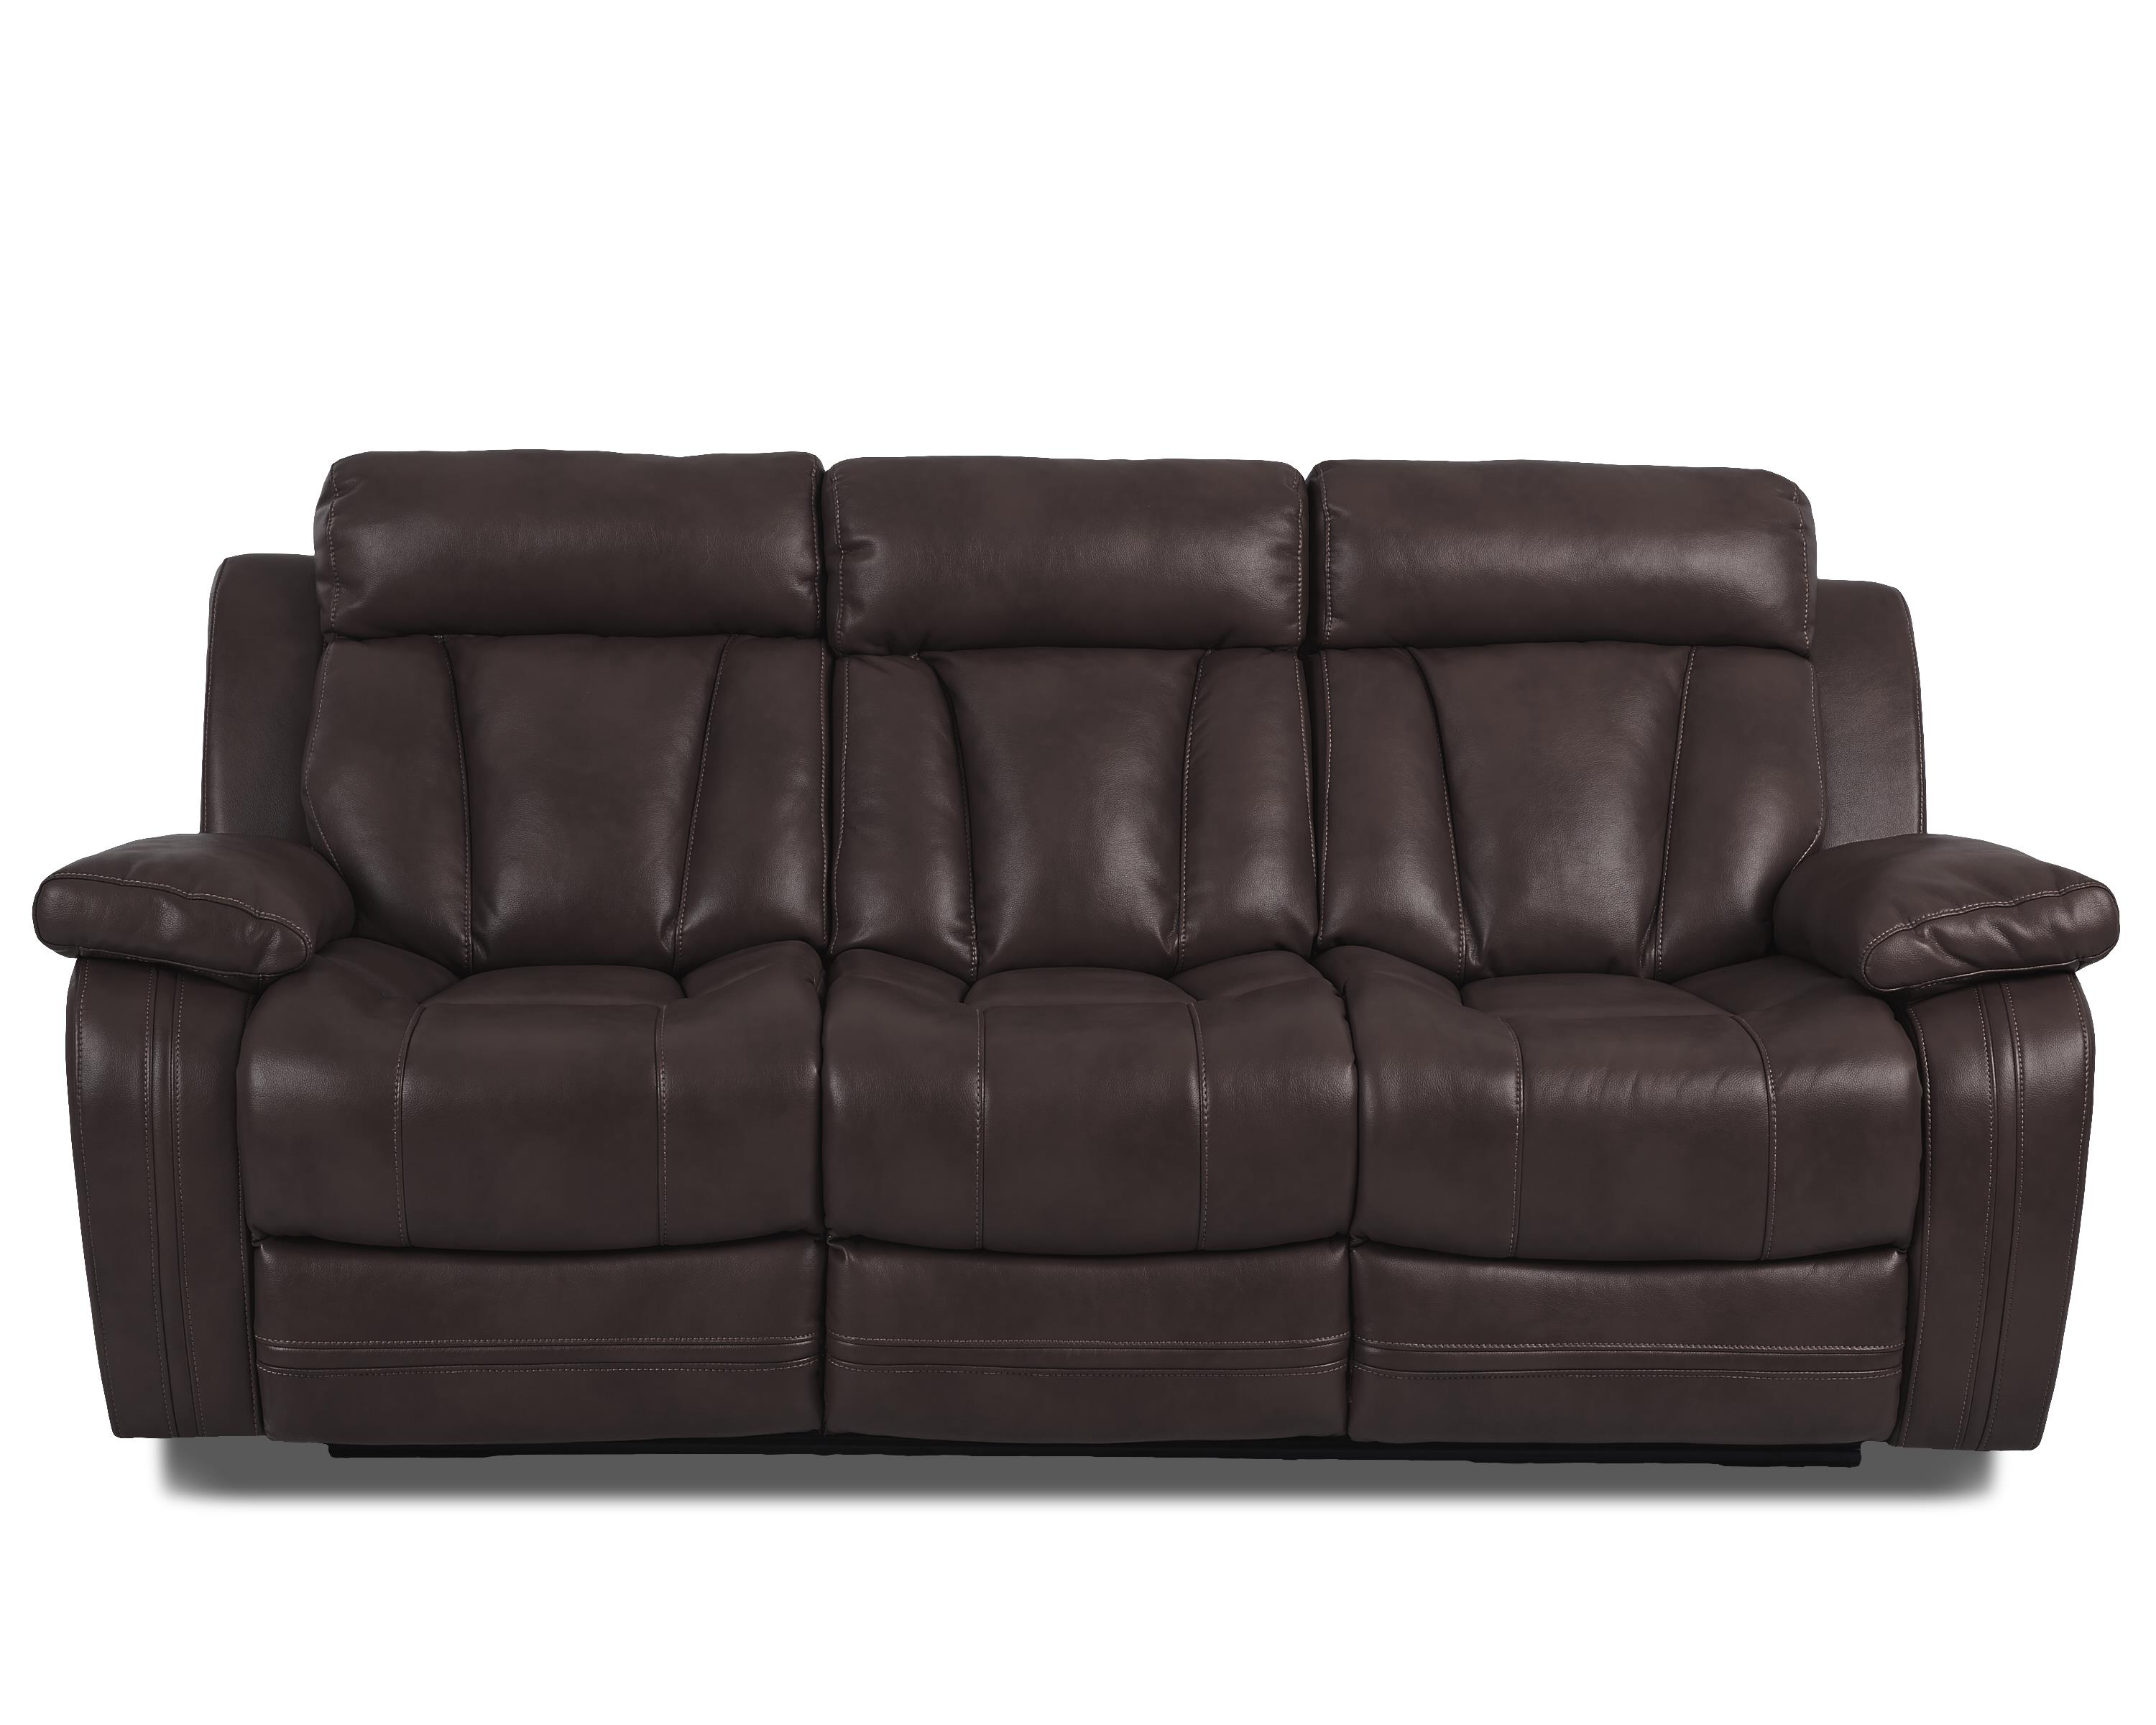 Atticus-US Power Reclining Sofa With Table by Klaussner International at Lagniappe Home Store